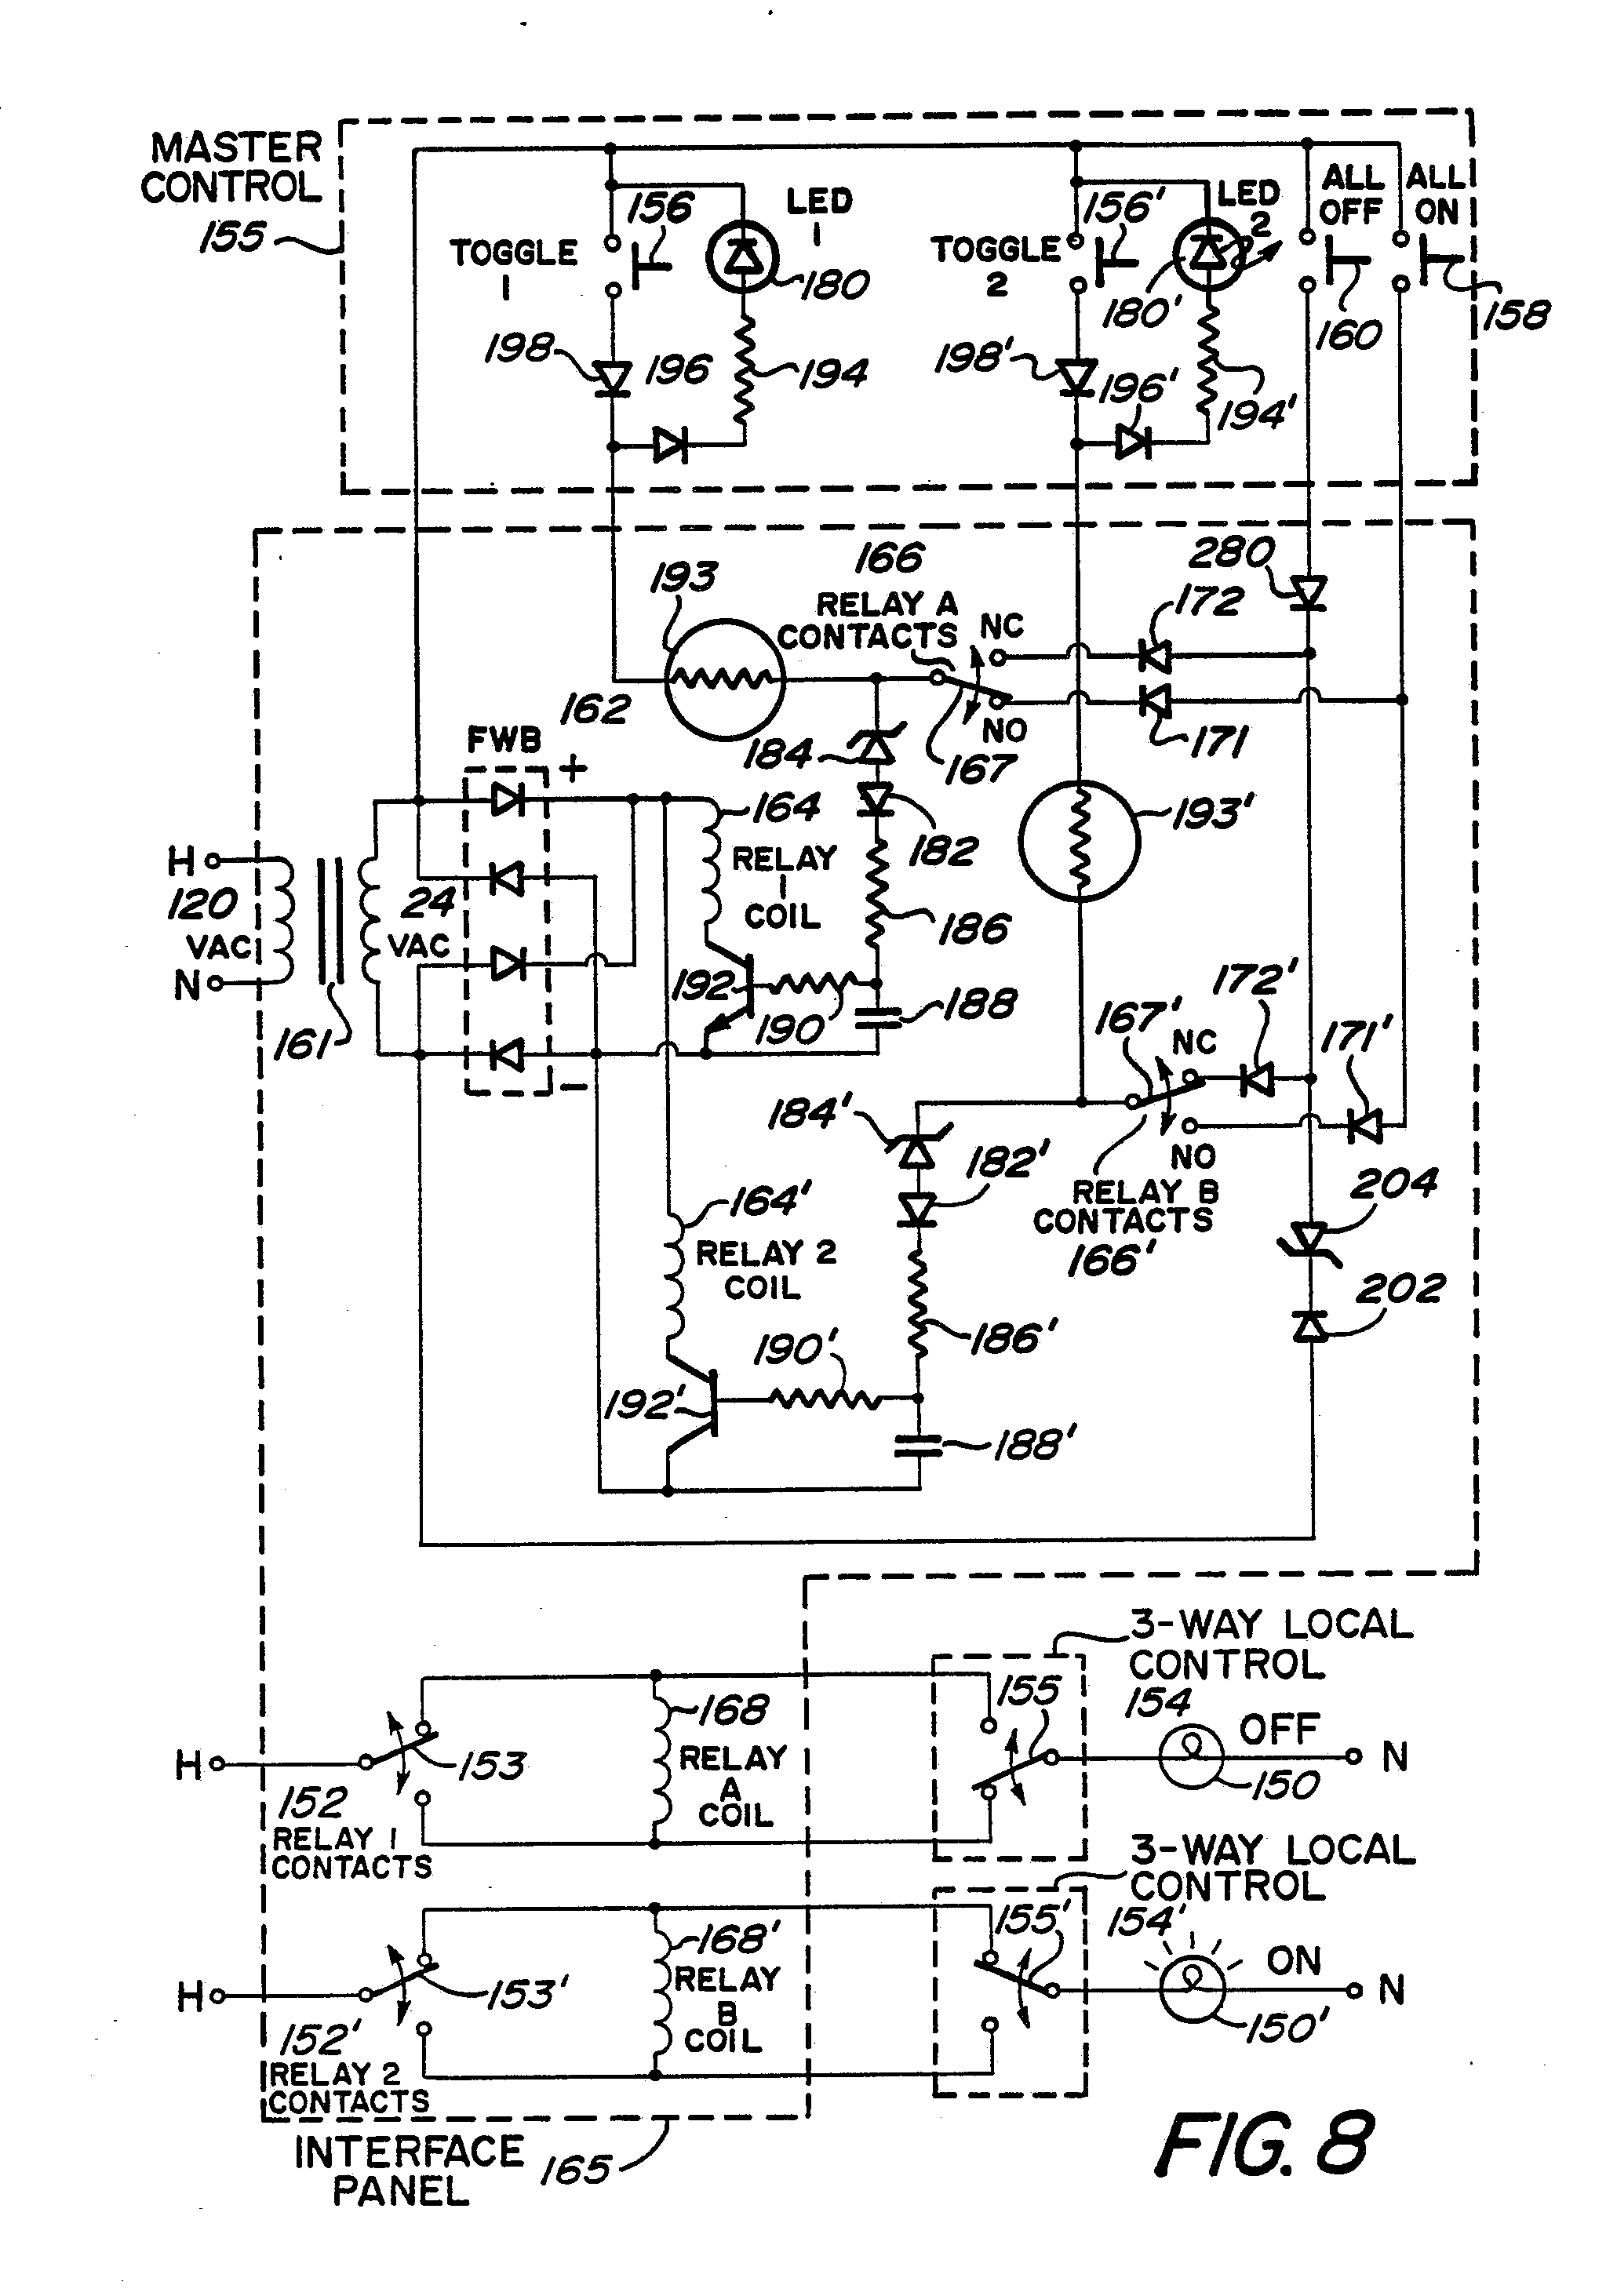 Patent EPA Master Electrical Load Control Google Patents - Abb basic relay school